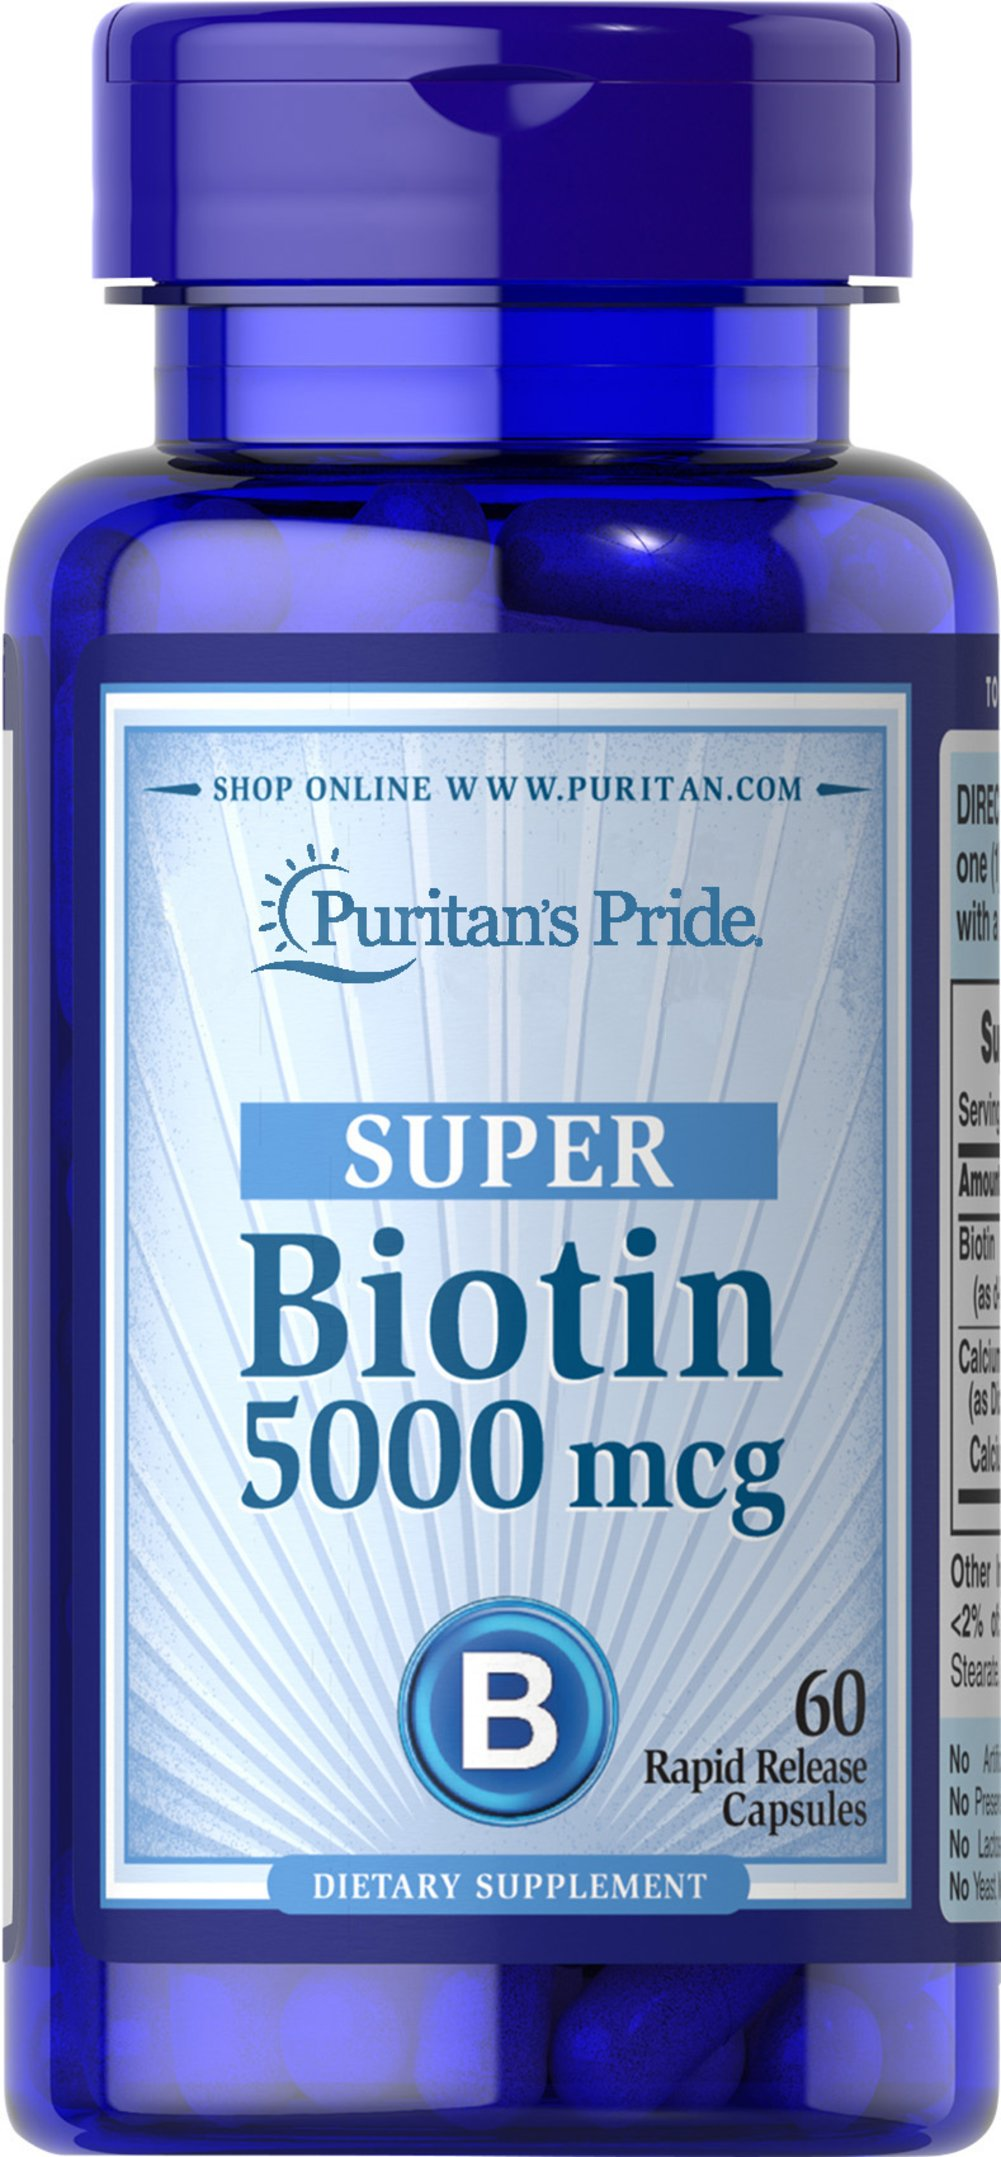 Biotin 5000 mcg <p>Supports Skin & Hair Health**</p><p>Found in foods such as oatmeal and soy, Biotin, a water-soluble B vitamin, assists in energy metabolism in cells.** Biotin helps to support healthy skin and hair.**</p> 60 Capsules 5000 mcg $5.99